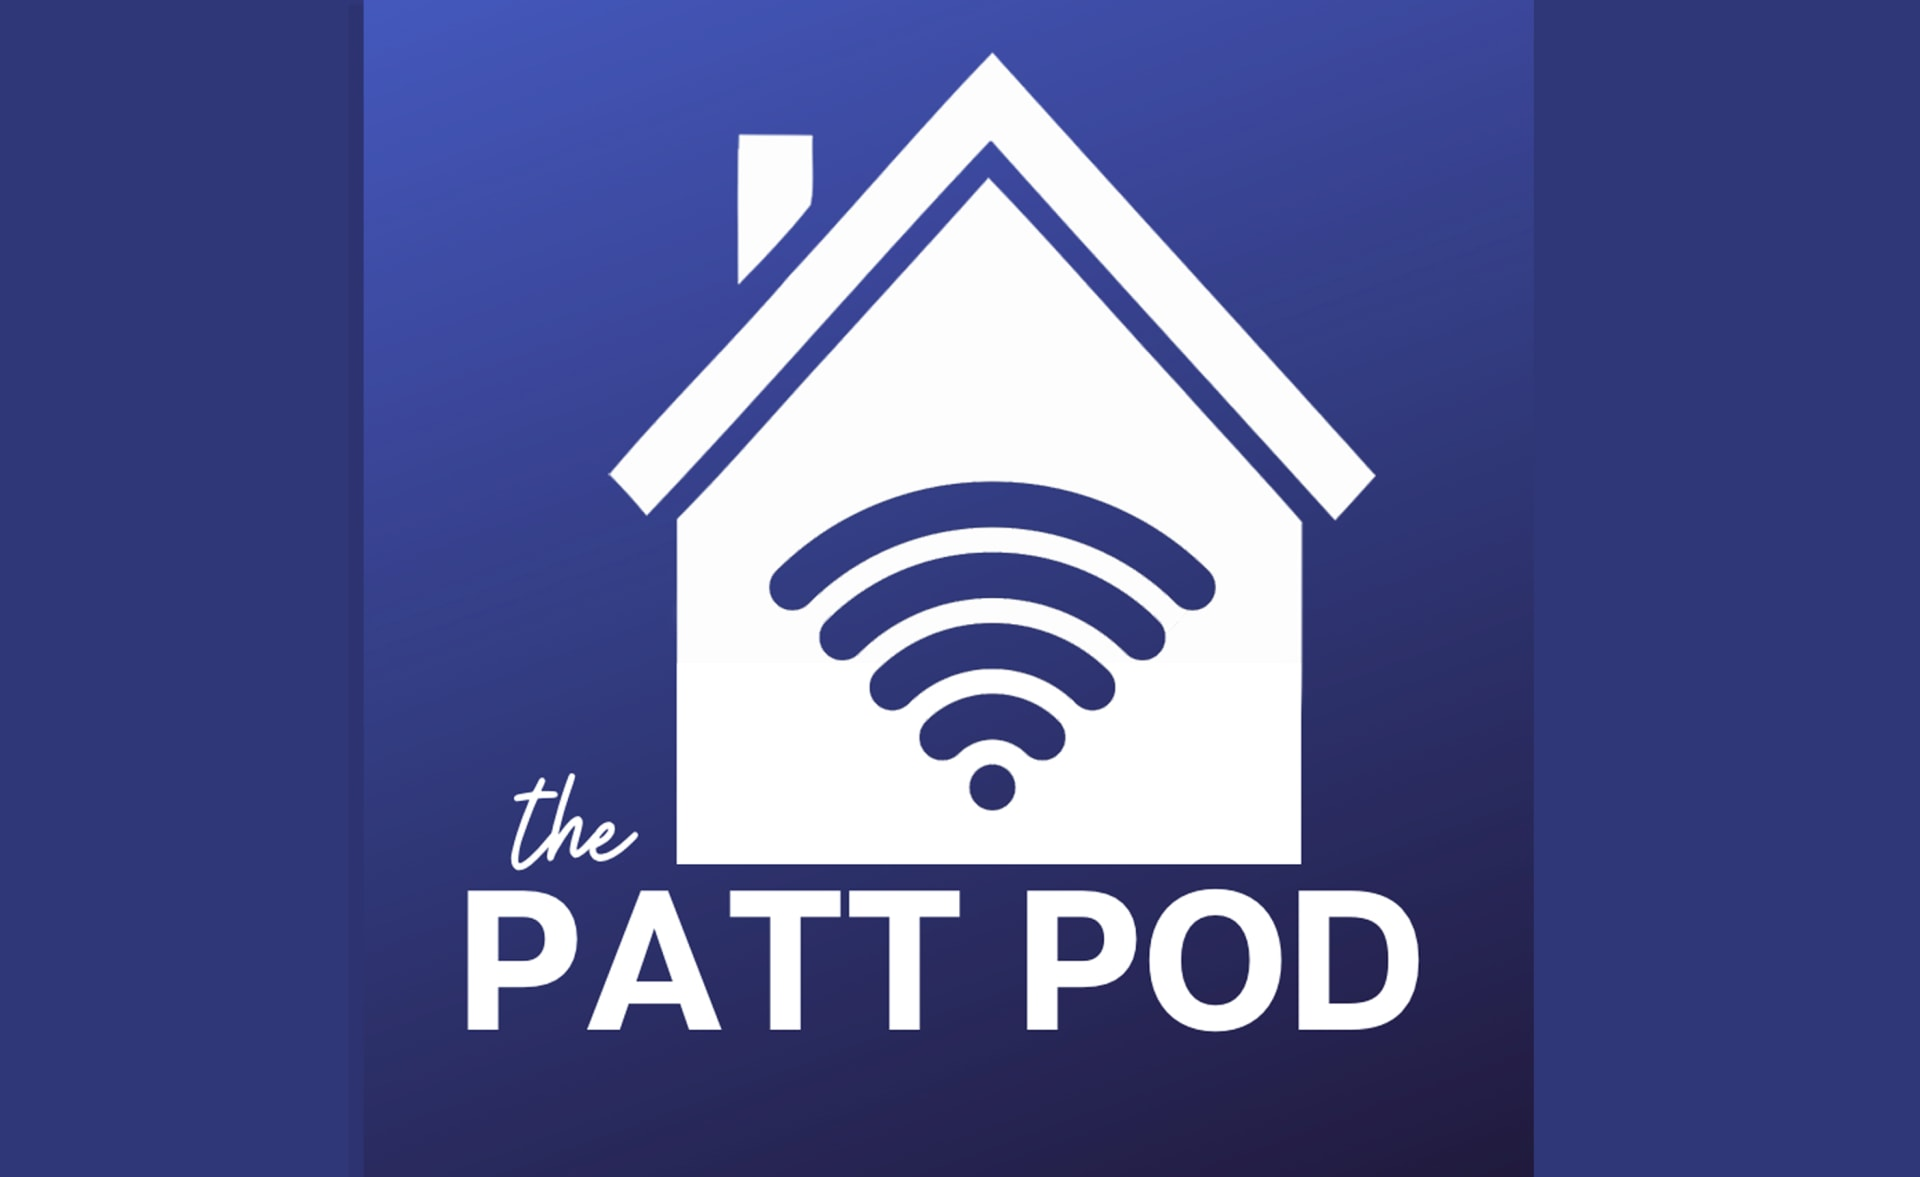 We Launched a Podcast!